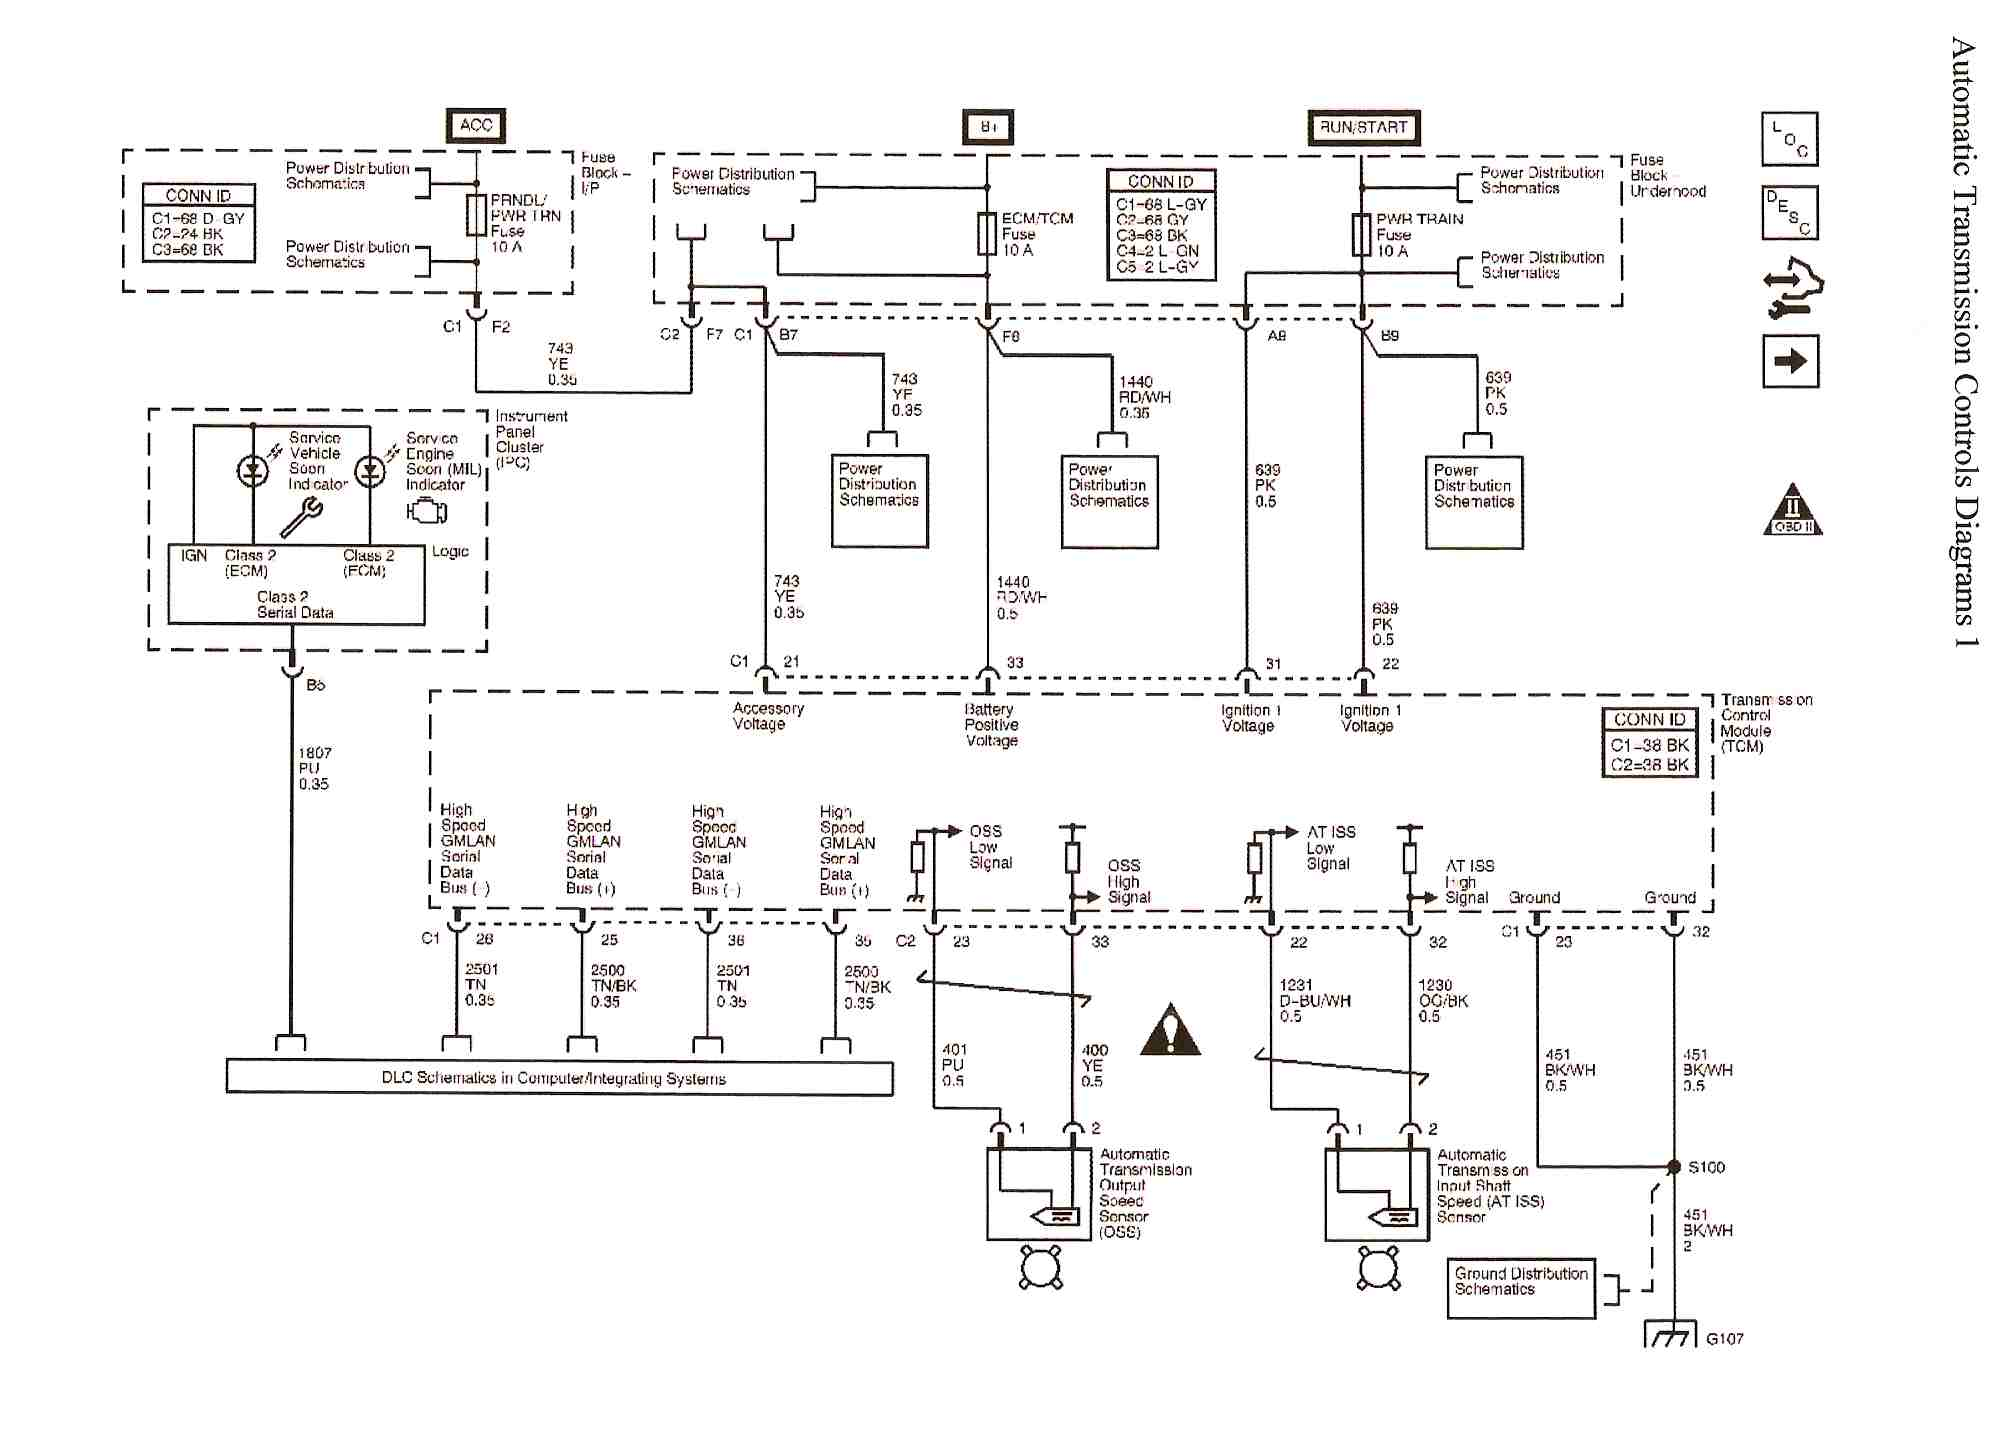 transmission wiring diagram chevy equinox ls 2005. Black Bedroom Furniture Sets. Home Design Ideas